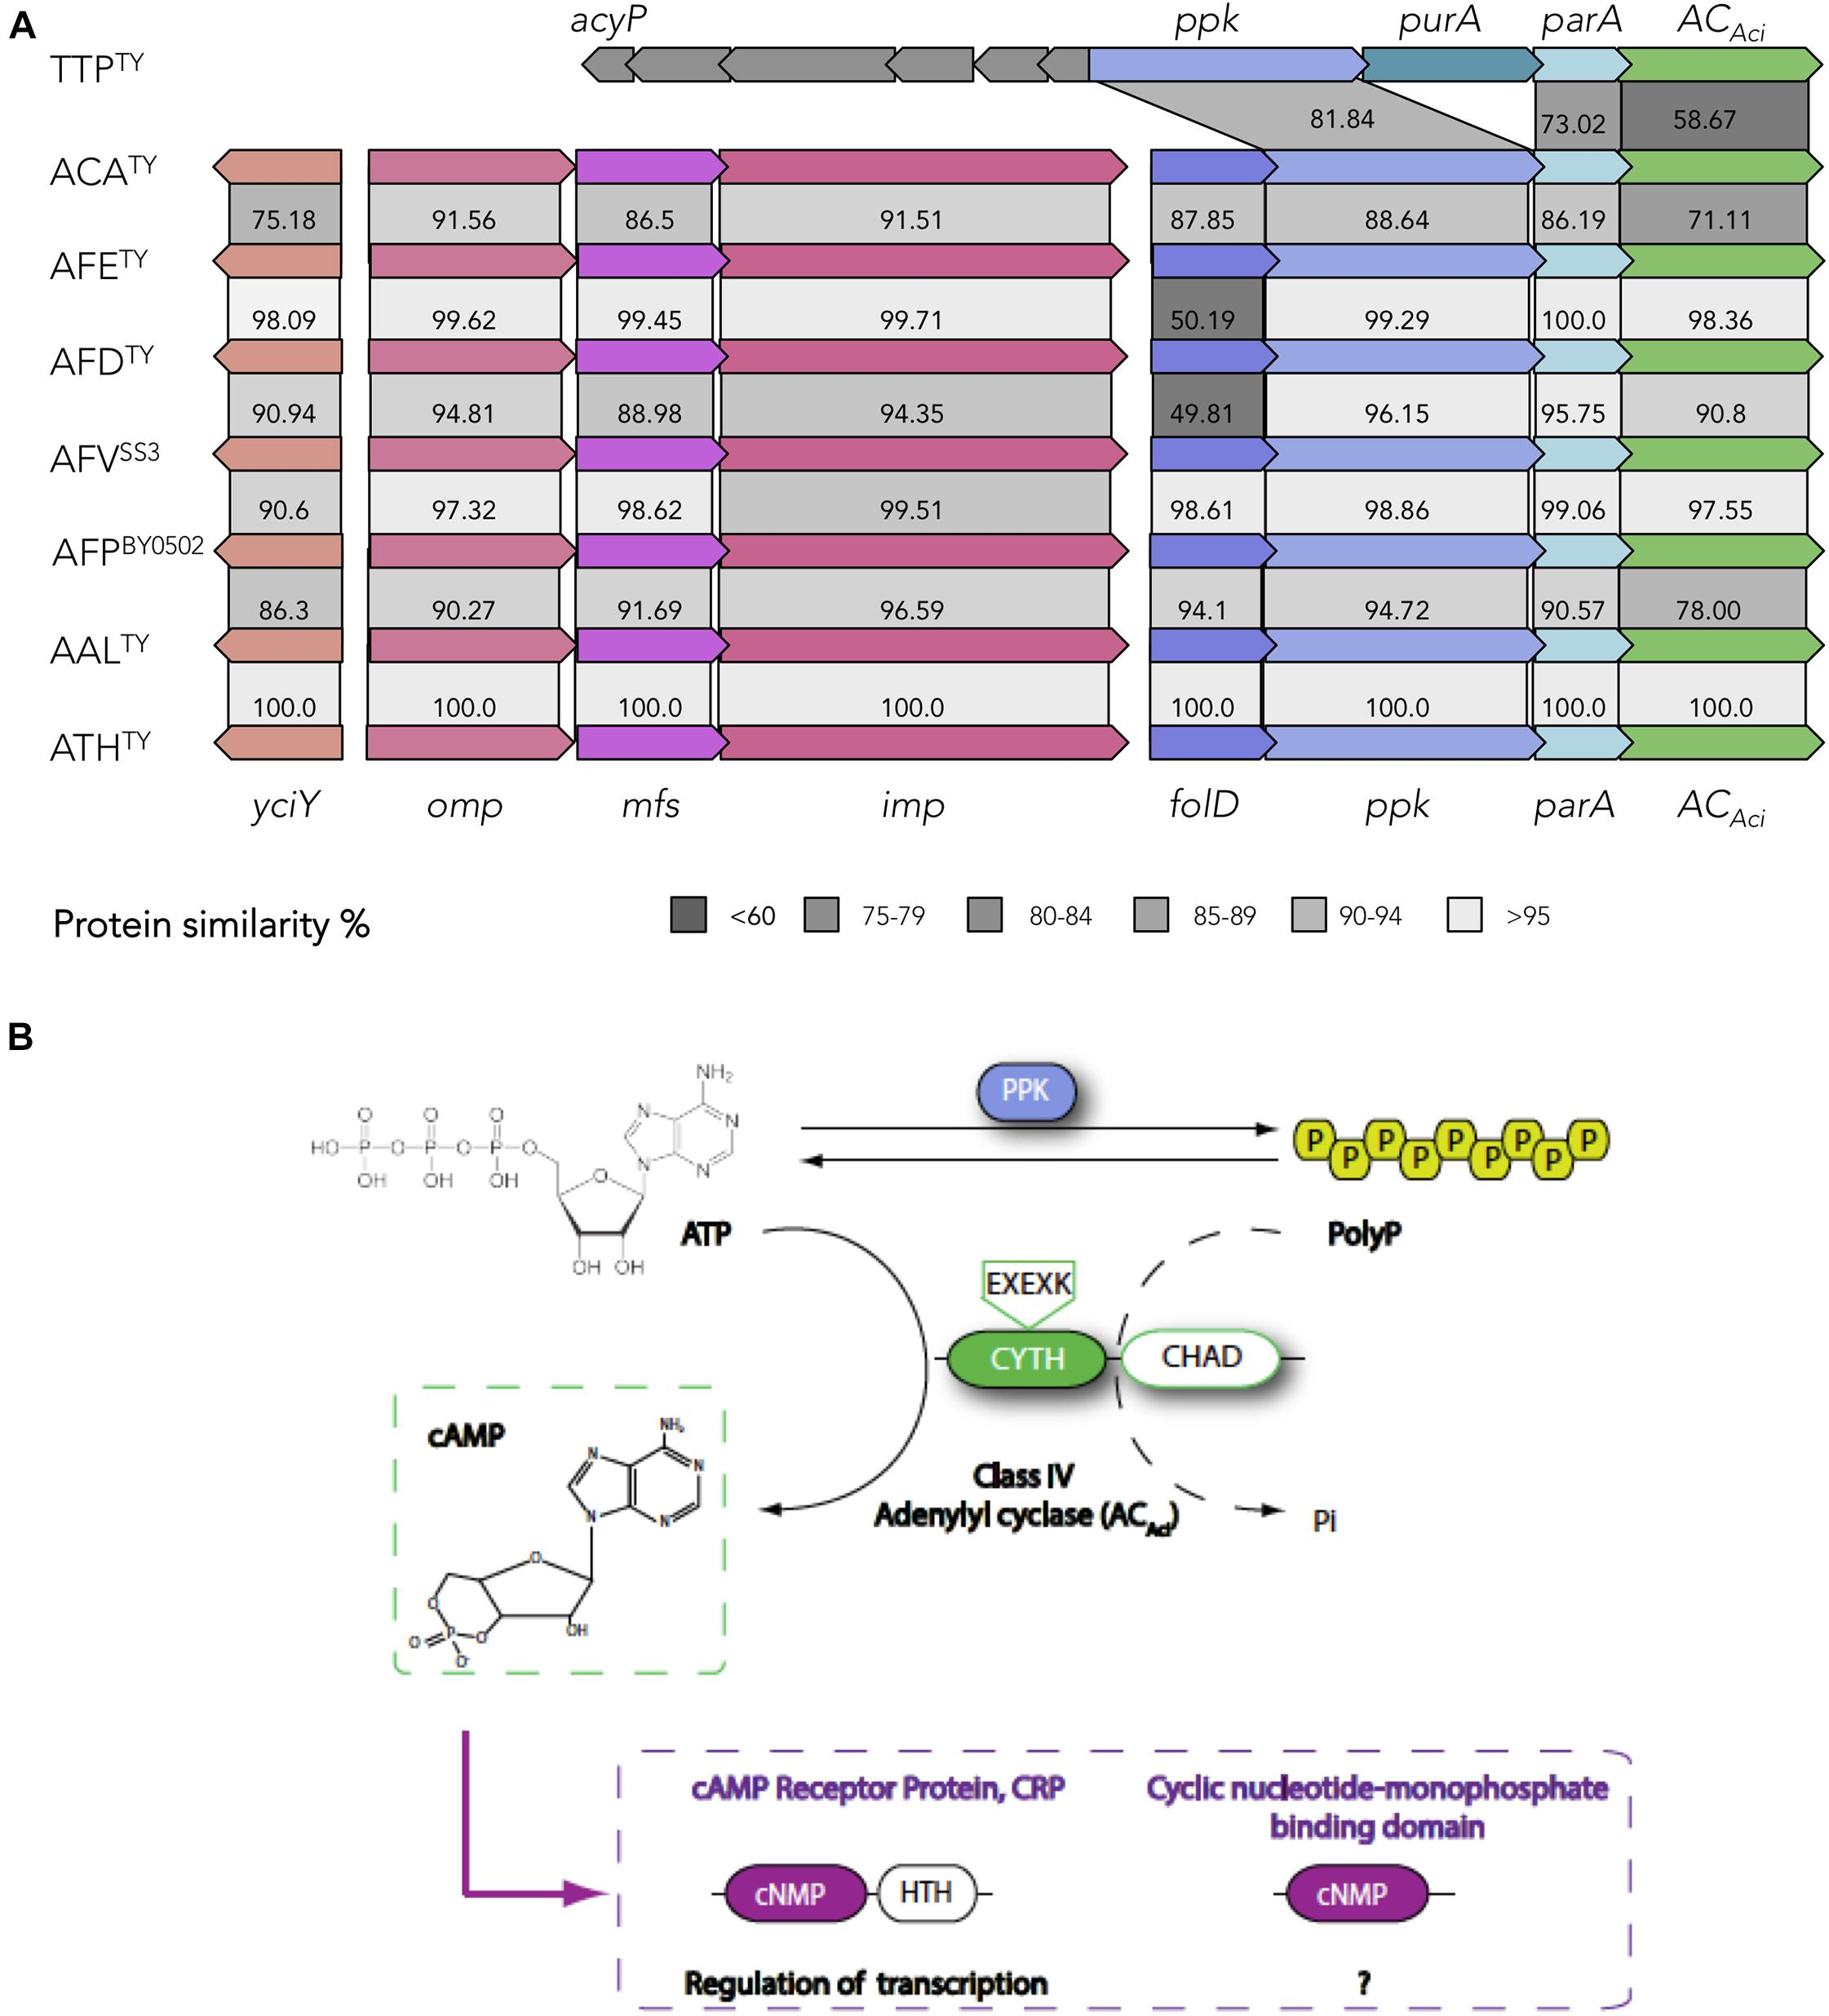 Frontiers | Nucleotide Second Messenger-Based Signaling in